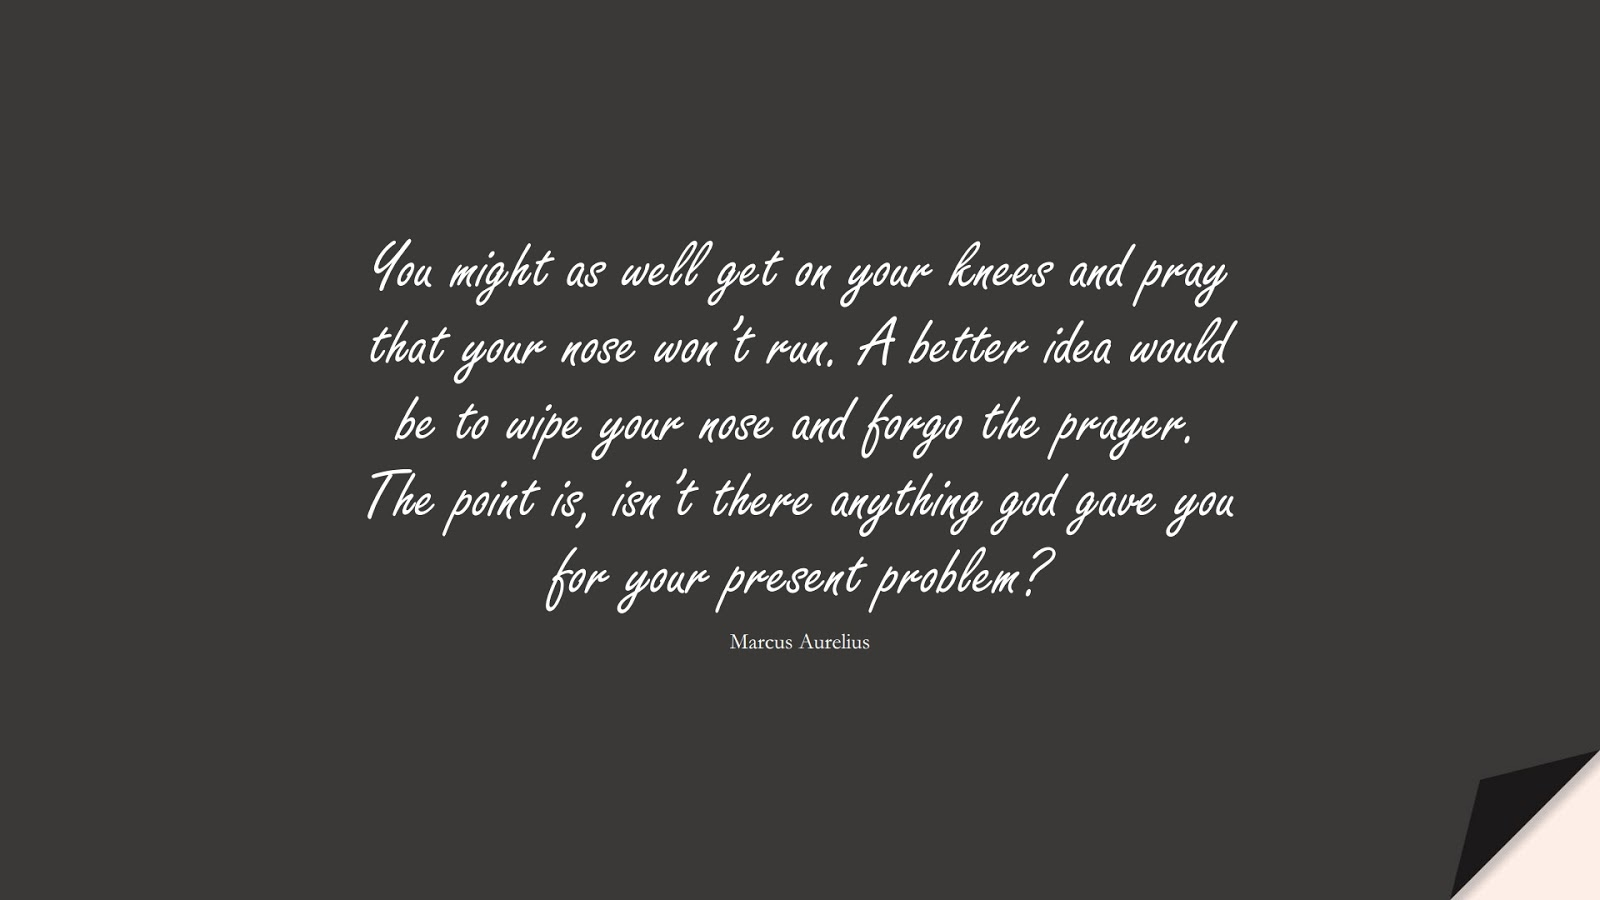 You might as well get on your knees and pray that your nose won't run. A better idea would be to wipe your nose and forgo the prayer. The point is, isn't there anything god gave you for your present problem? (Marcus Aurelius);  #MarcusAureliusQuotes